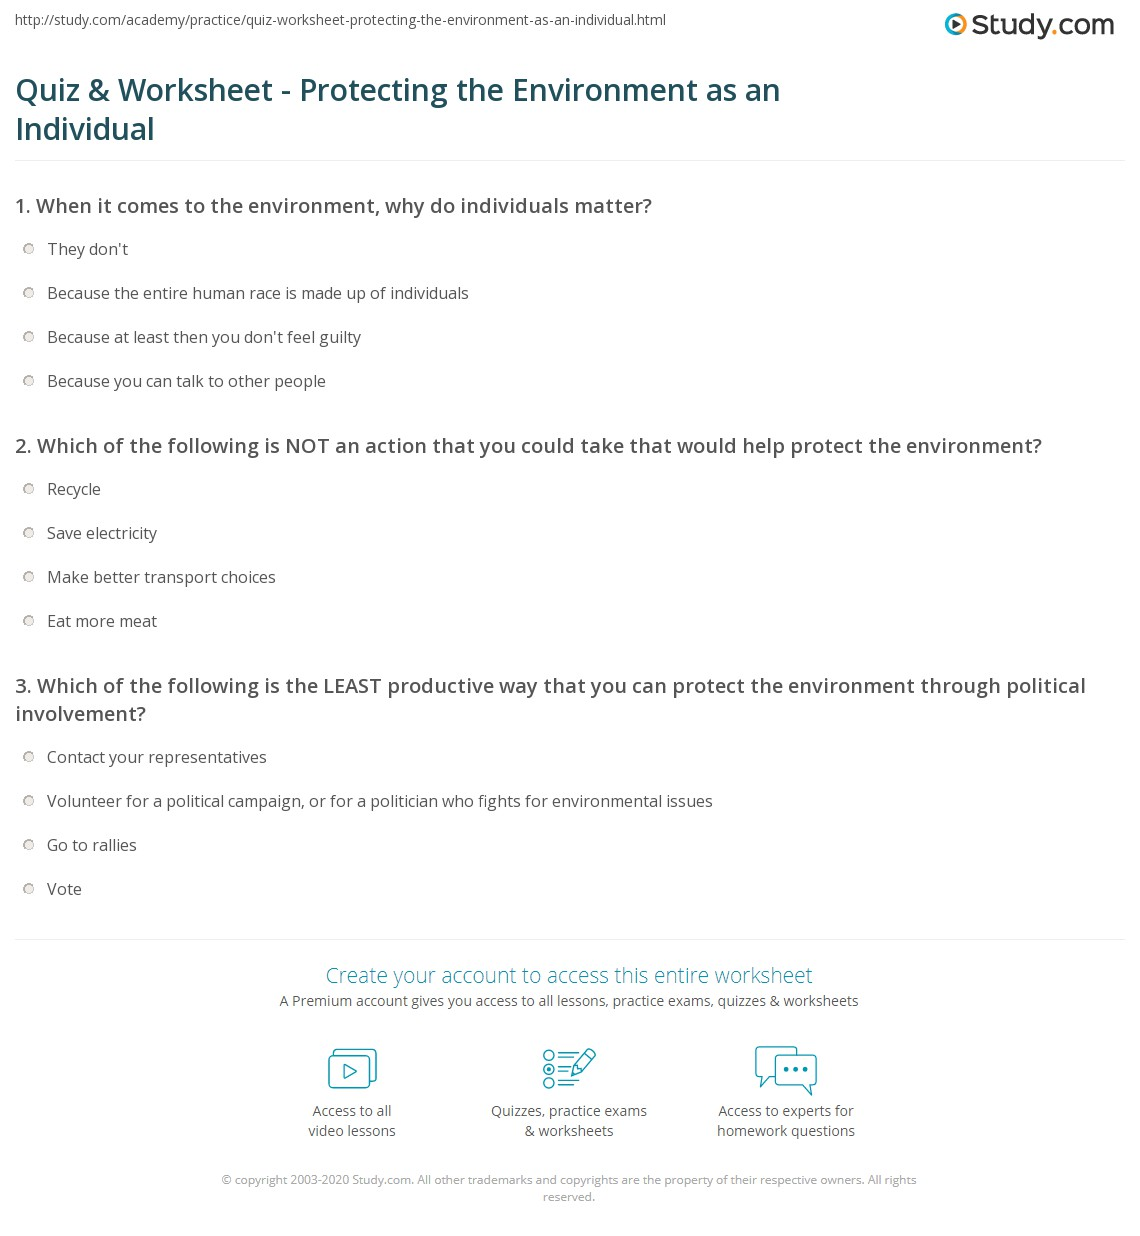 Free Worksheet Holt Environmental Science Worksheets quiz worksheet protecting the environment as an individual print role of individuals in worksheet